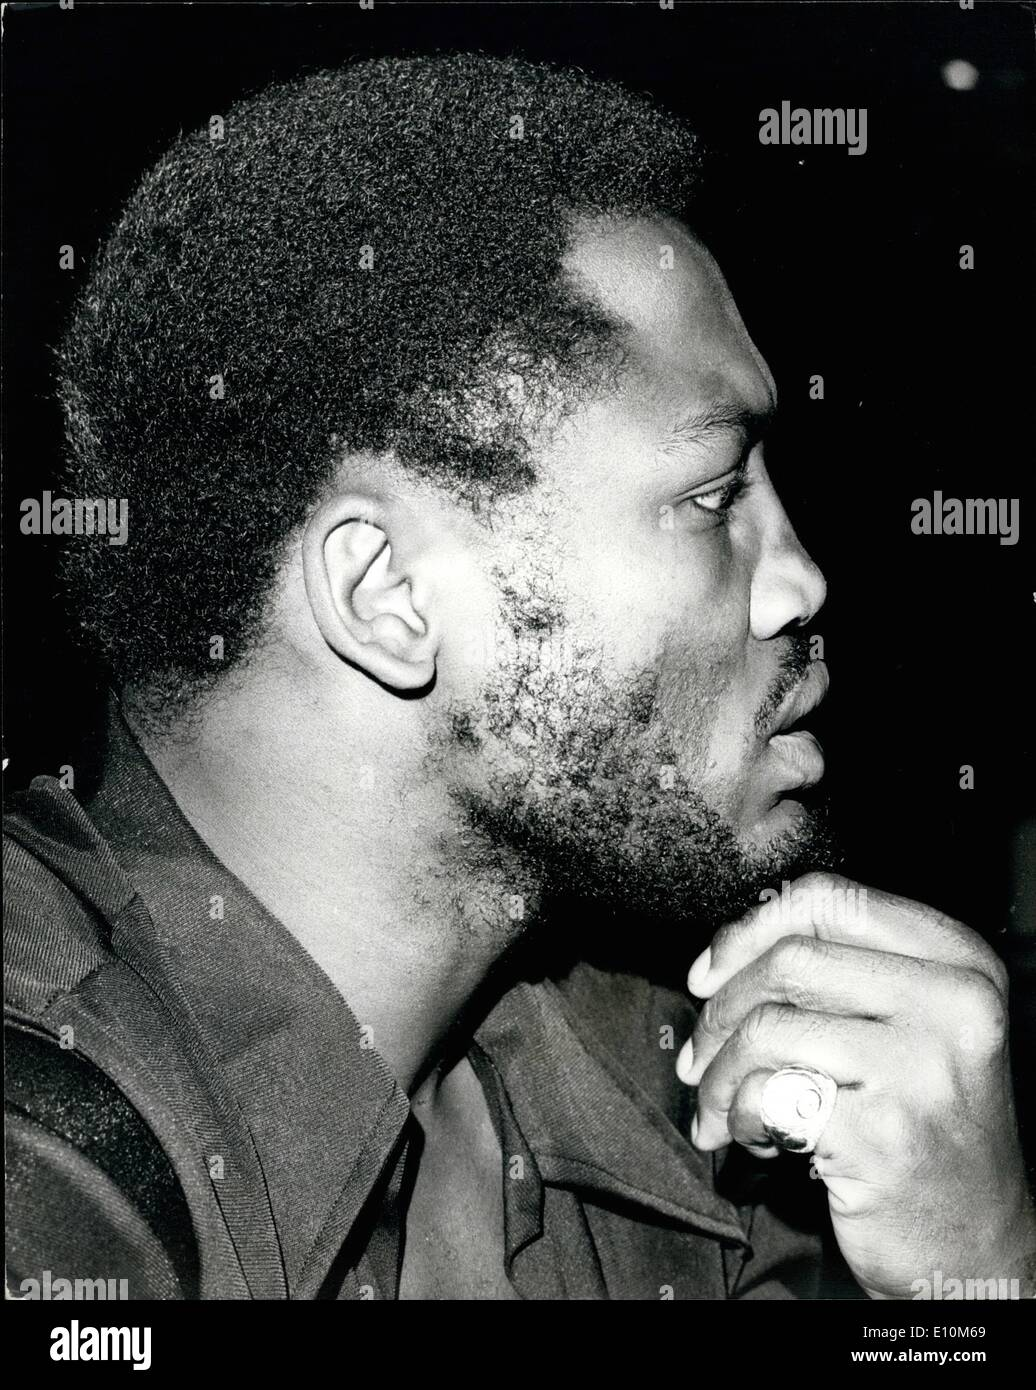 Jun. 06, 1973 - Will Frazier's beard have to go.: The former world heavyweight champion, Joe Frazier, together with Britain's Joe Bugner, who meet at Earls Court, London, next Monday, went along to the Empire Ballroom, Leicester Square, to go over the rules of the fight, during which Frazier was in dispute with Bugner's manager, Andy Smith, as to whether he will be allowed to retain his beard. The B.B.B. of C are considering the issue. Photo shows Joe Frazier thoughtfully fingers his beard, today. - Stock Image